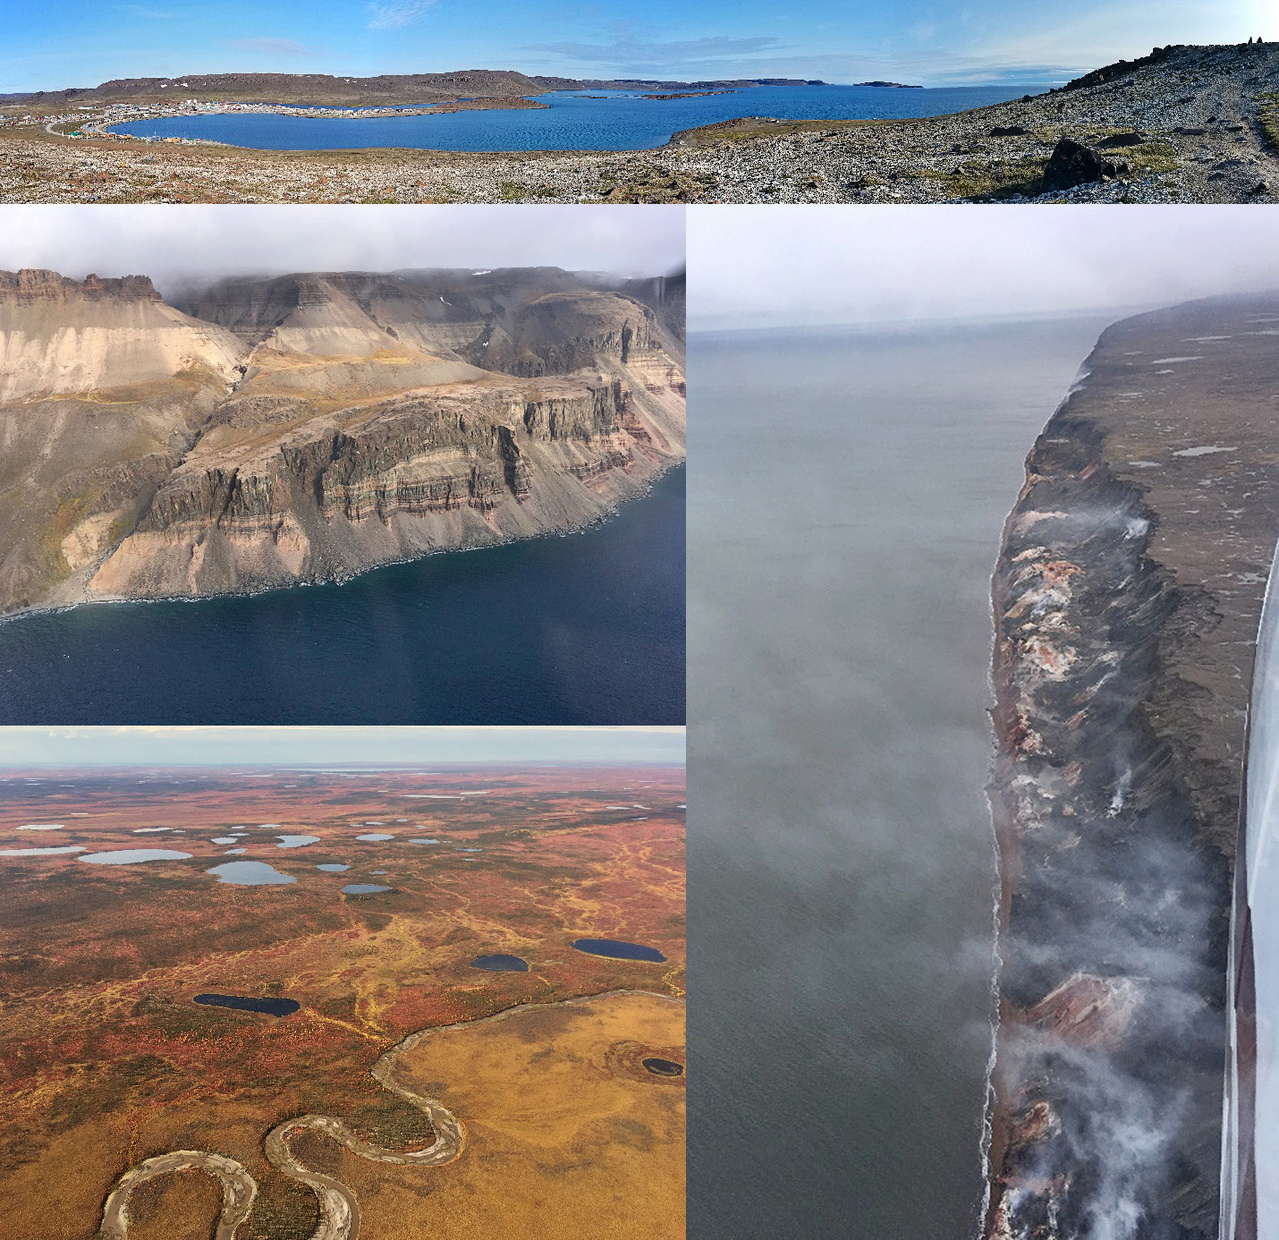 In addition to bowhead whales and other marine mammals, the ASAMM Bowhead Whale teams also saw spectacular sights in the Northwest Territories, Canada. The view above the village of Ulukhaktok (top). Sheer cliff faces of Banks Island (top left). Smoking Hills (right). Fiery fall tundra (bottom left). The  Canadian Arctic was bathed in never-ending beauty to behold.